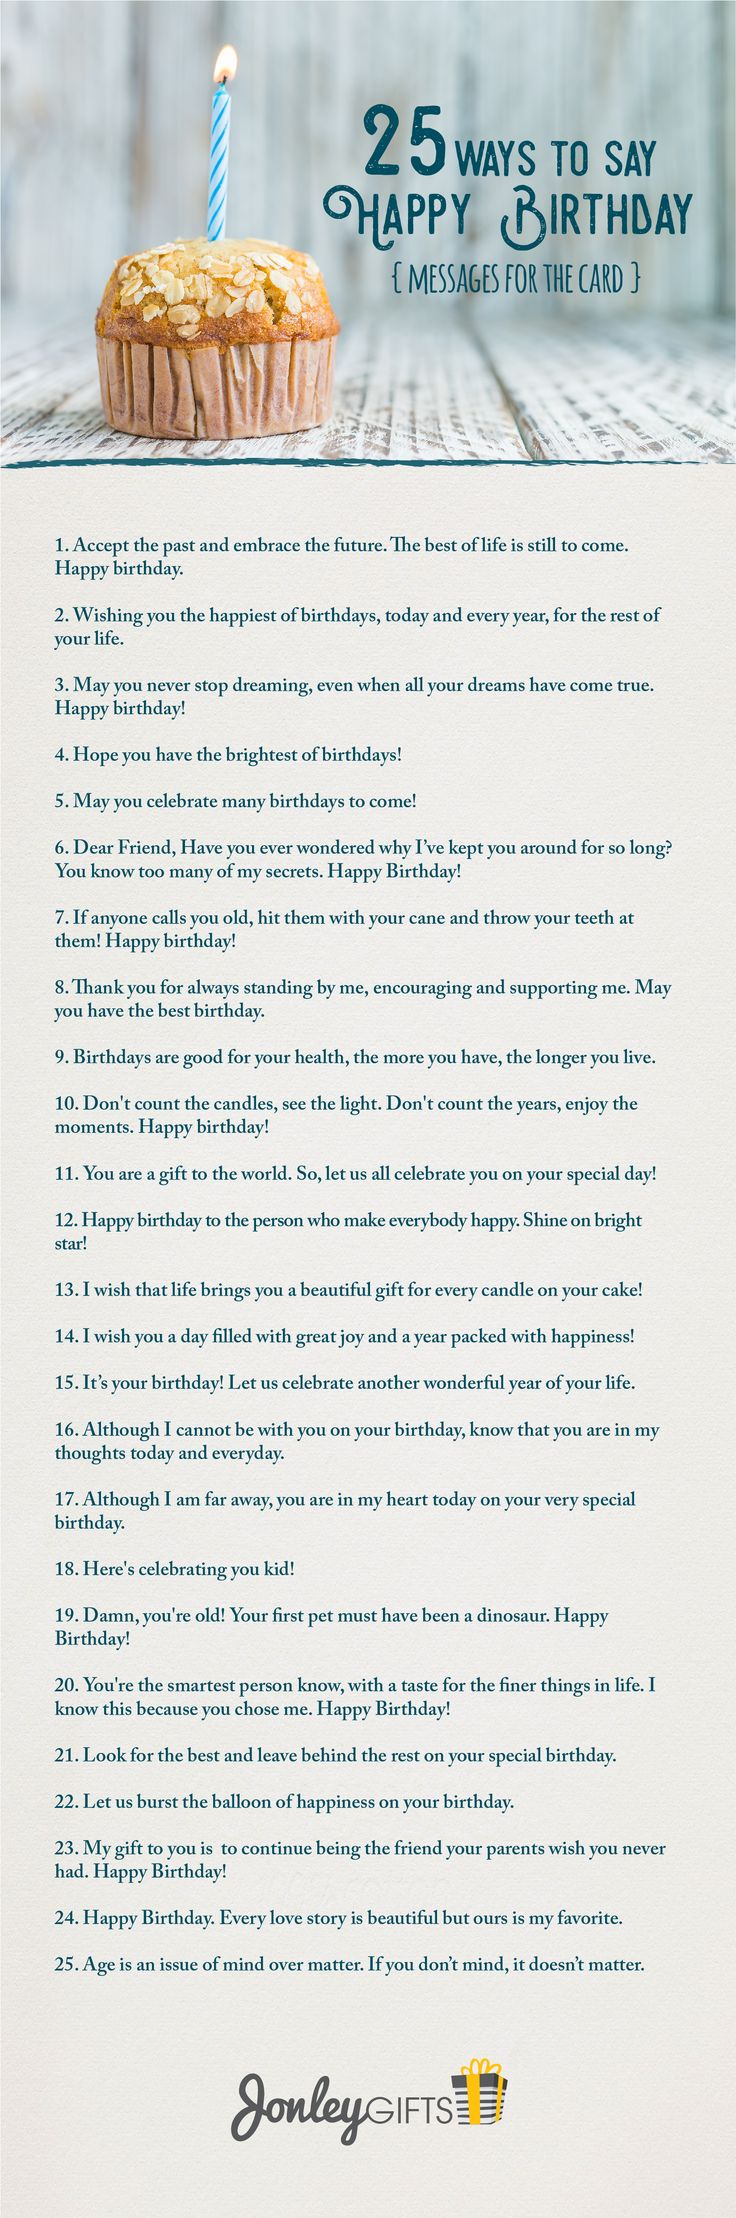 Having trouble coming up with the perfect birthday message? Here are 25 great ways to wish that special someone in your life a Happy Birthday. The list is filled with funny, romantic, and poetic birthday wishes to help inspire those magical words you can't seem to find.